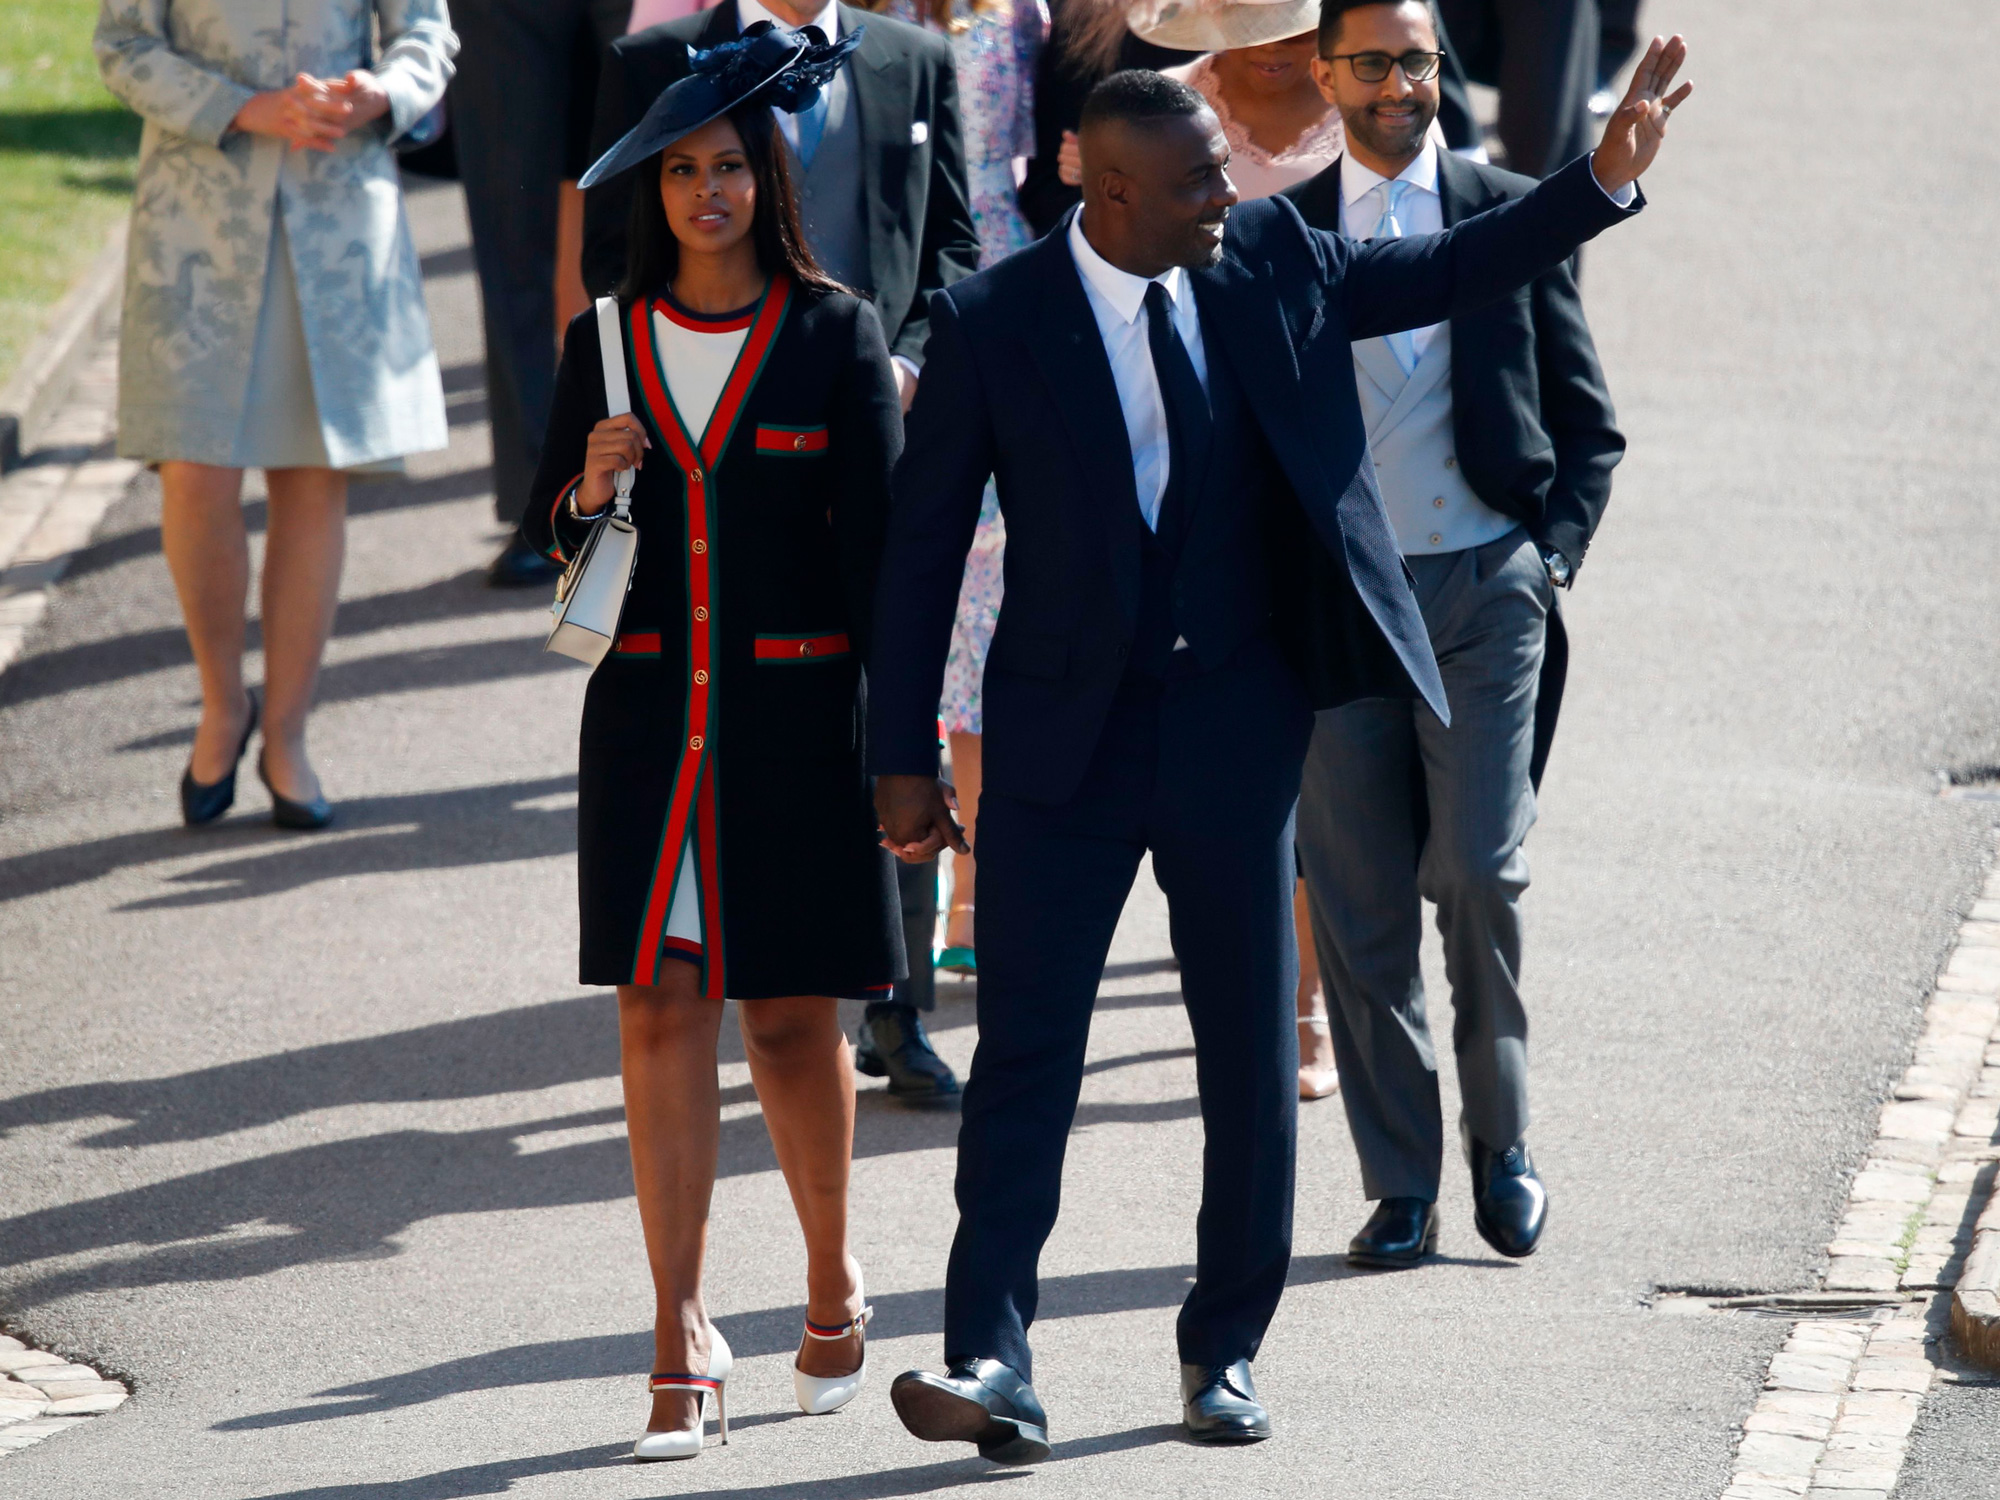 99add81491089 British actor Idris Elba (R) arrives with his fiancee Sabrina Dhowre (L)  for the wedding ceremony of Britain s Prince Harry